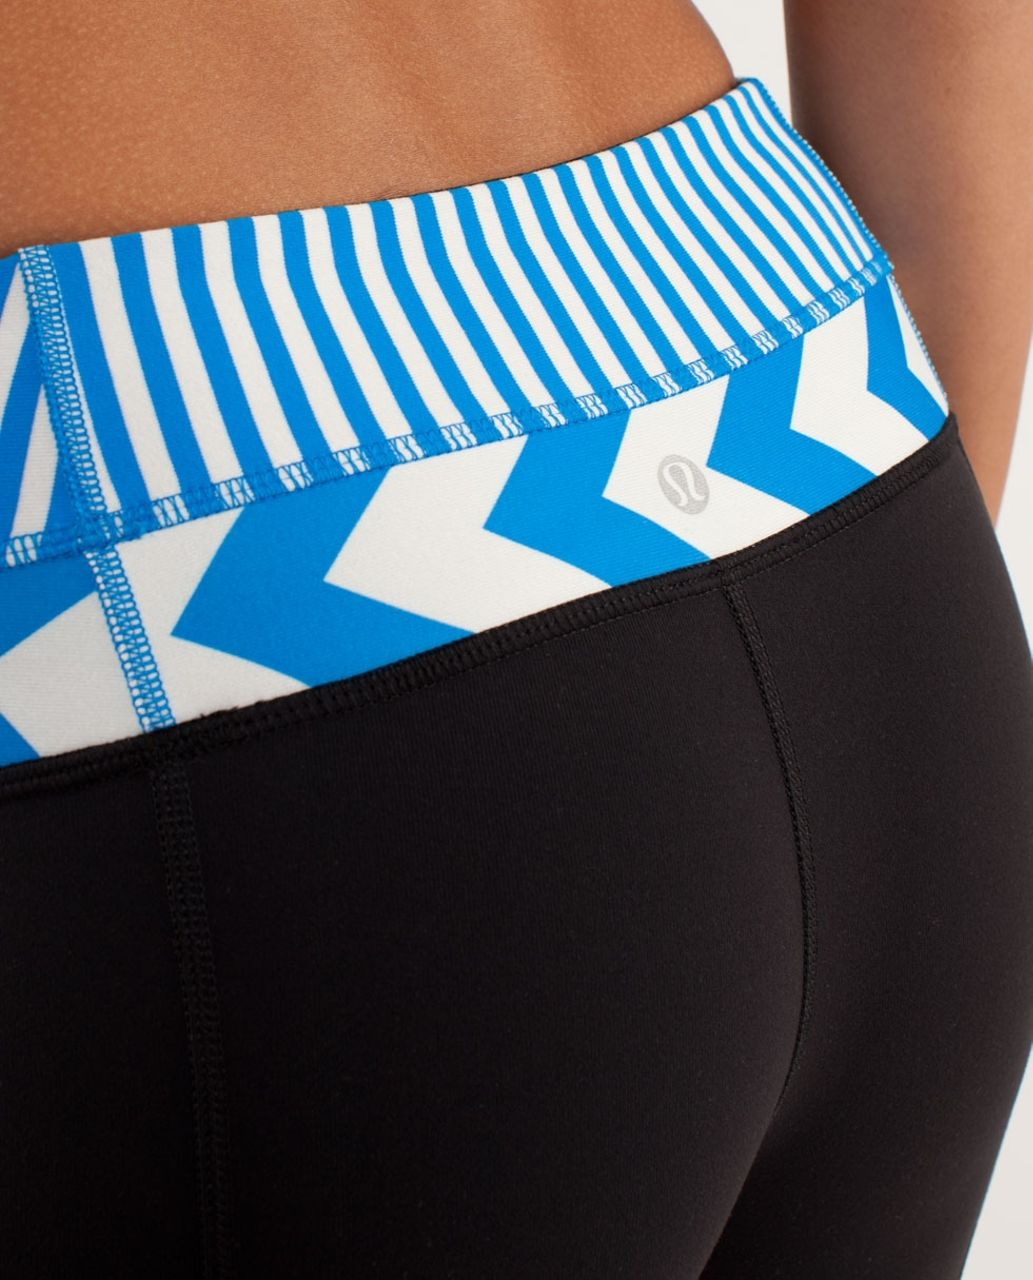 Lululemon Groove Pant *Slim (Tall) - Black / Classic Stripe Polar Cream Beaming Blue / Arrow Chevron Heathered Polar Cream Blu